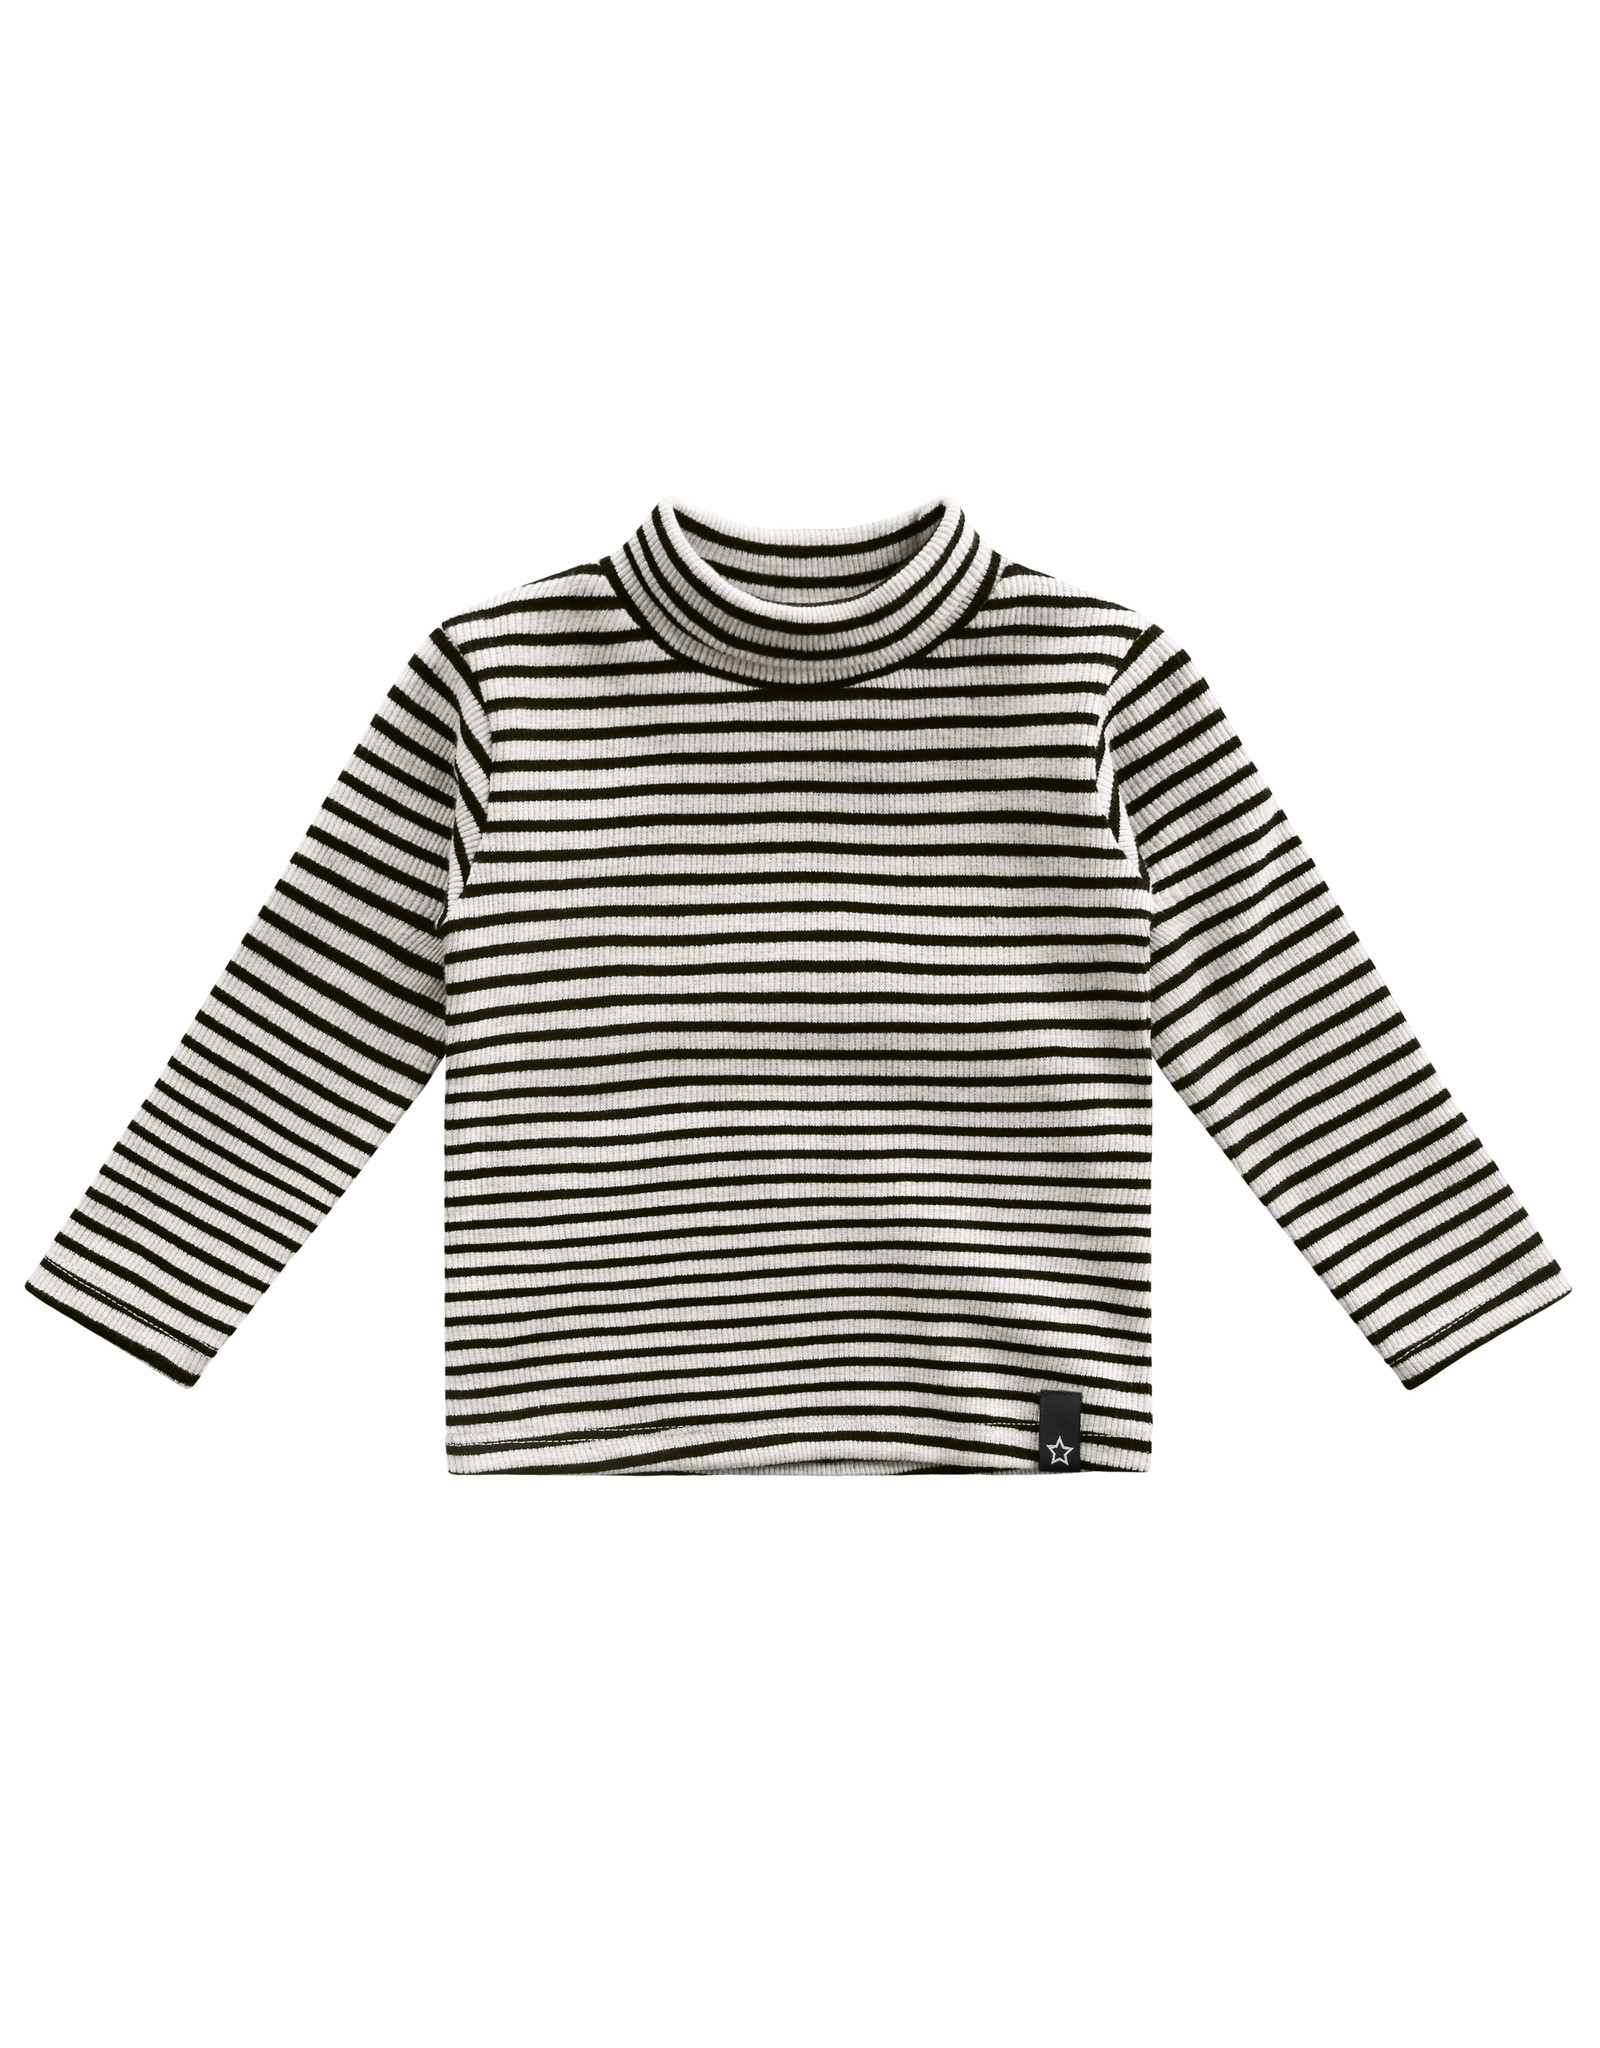 Your Wishes YW | Beige - Stripes | Turtleneck | Chalk